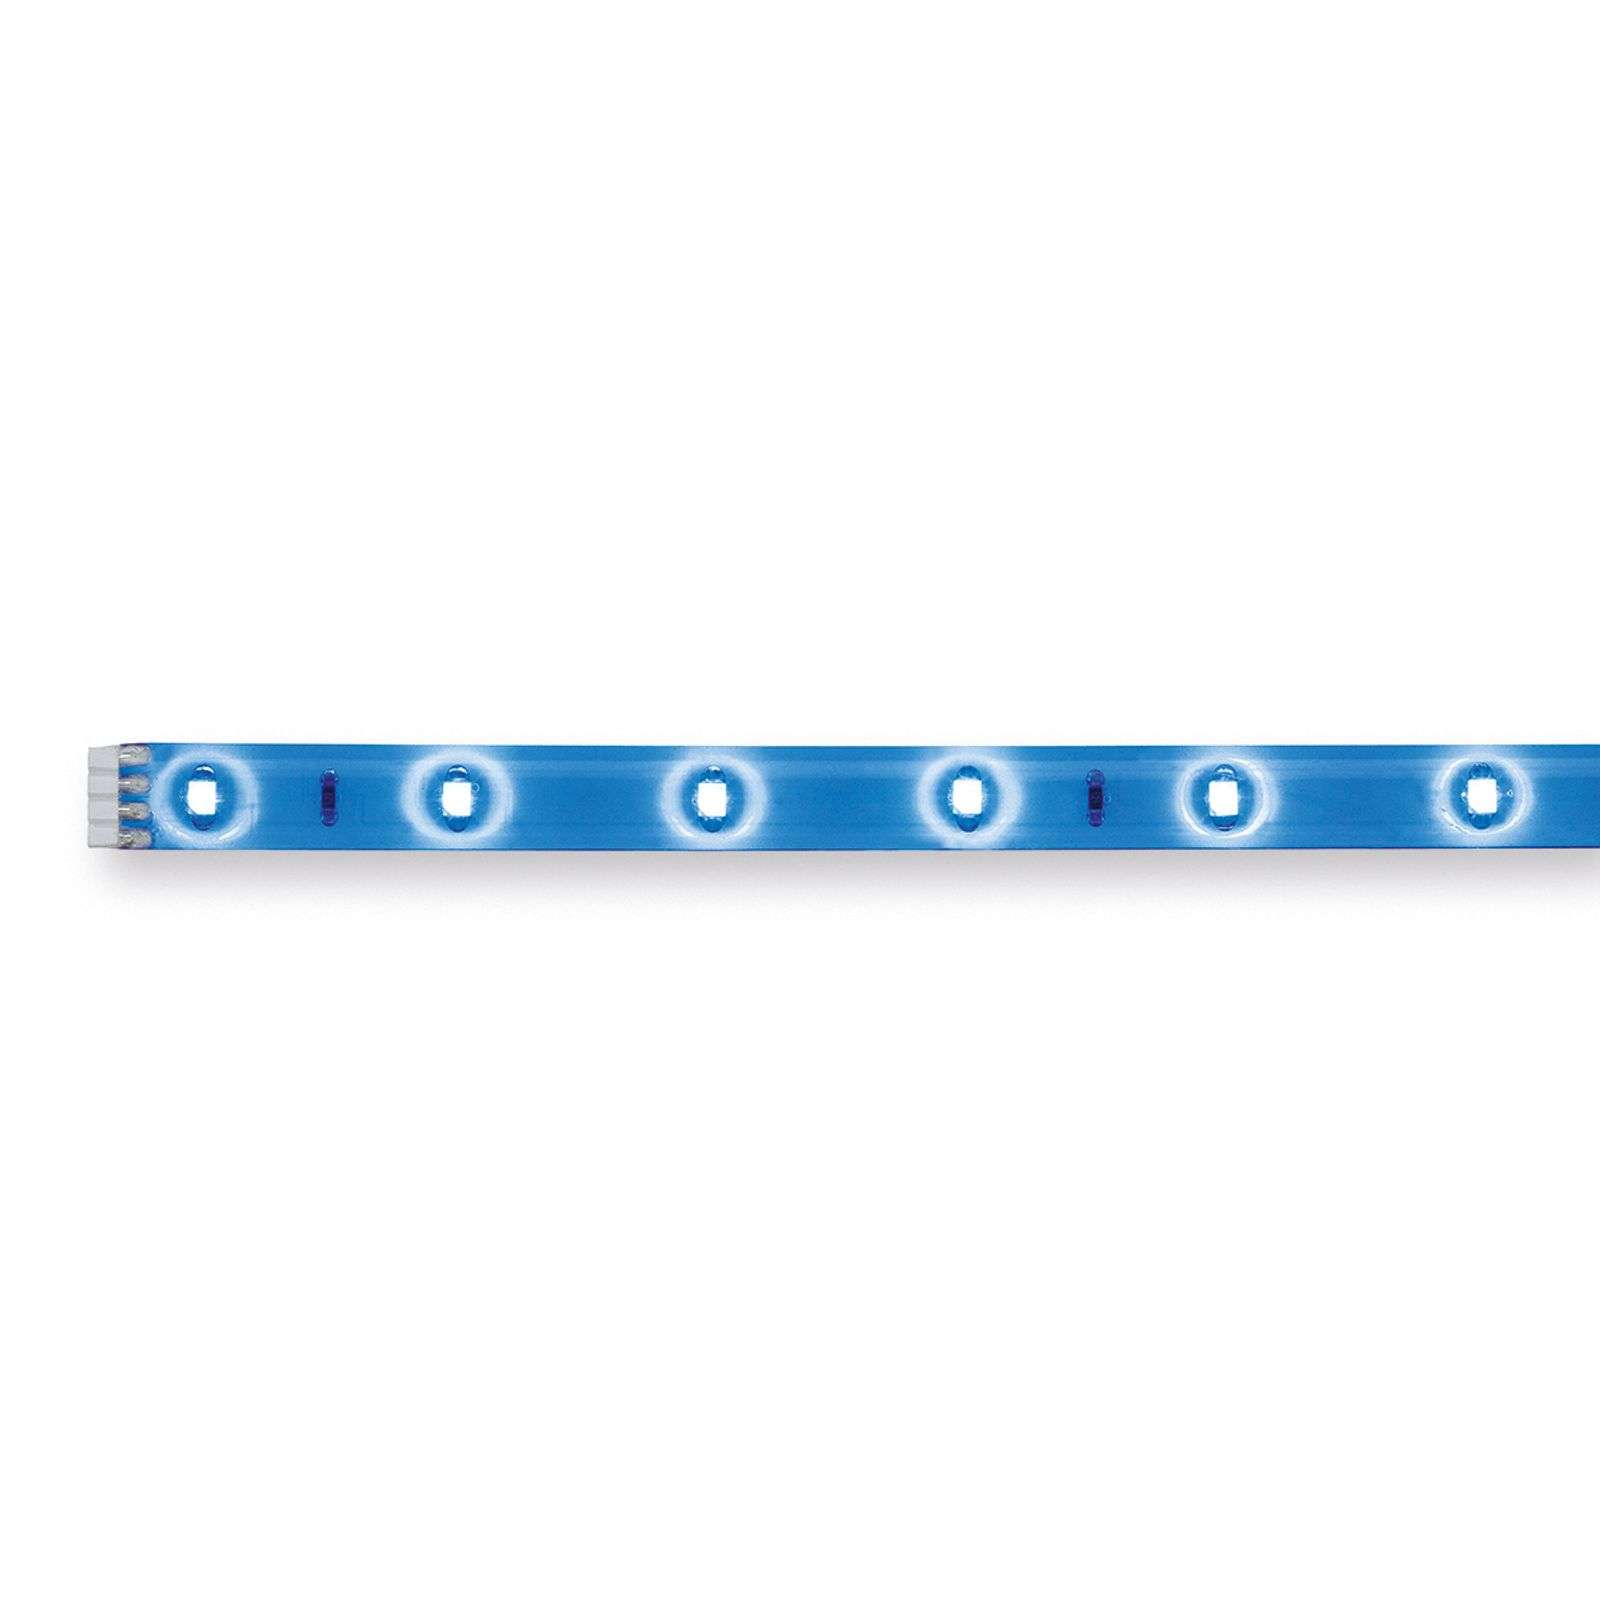 Strip YourLED lunghezza 97,5 cm, LED blu